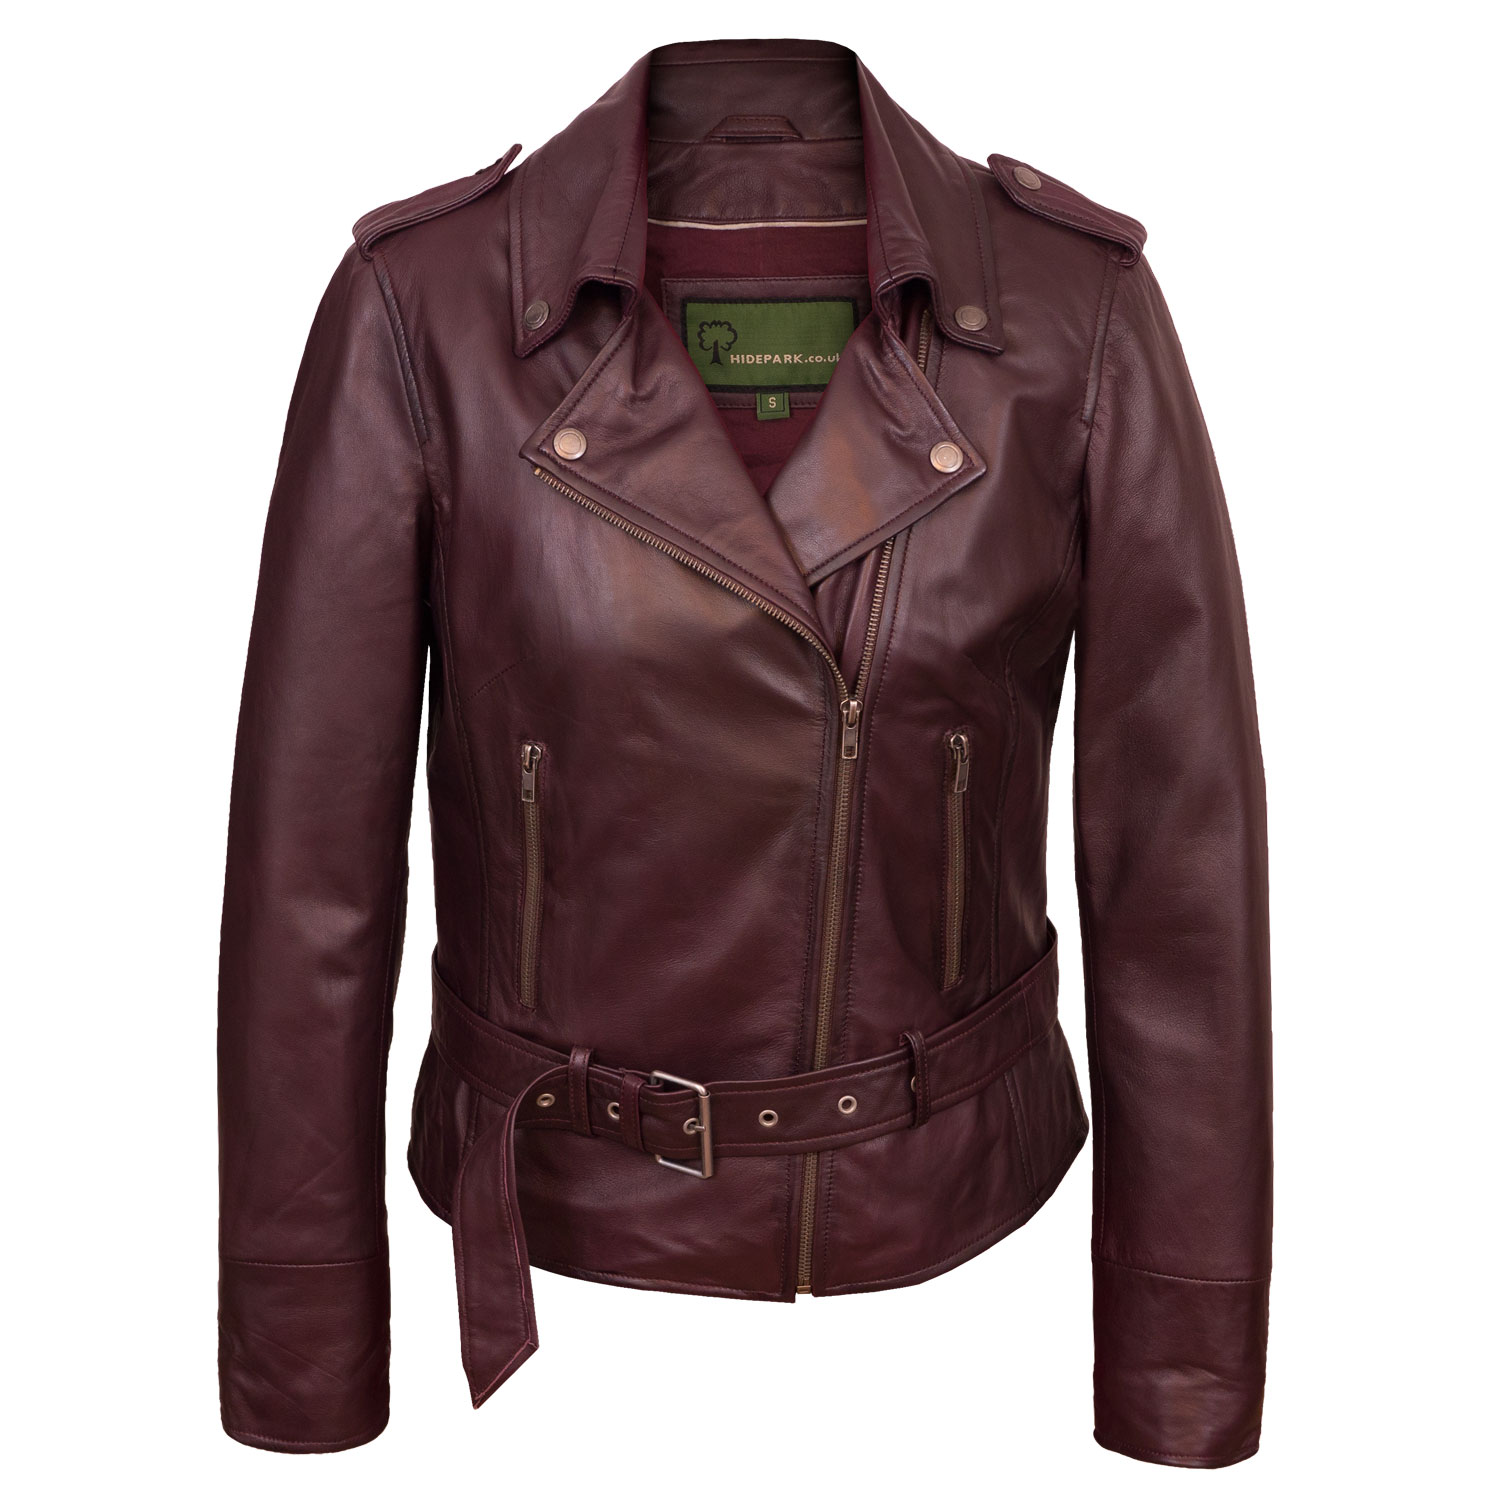 Ladies burgundy leather biker jacket Zoe